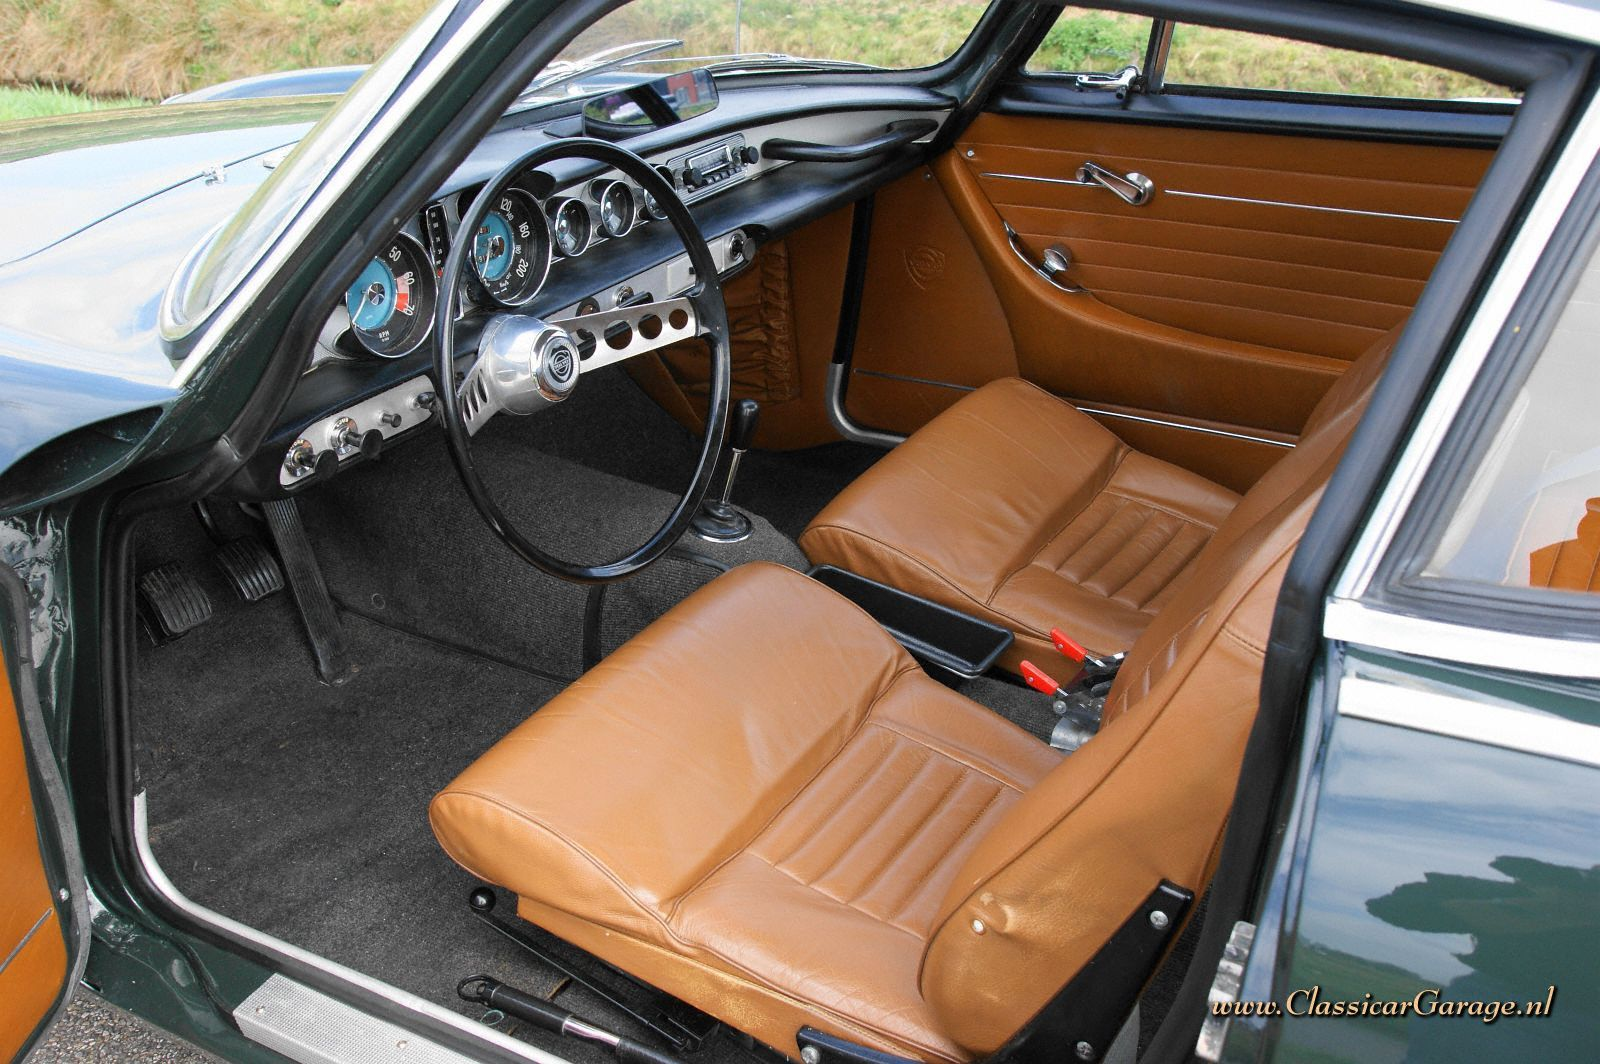 Citroen 2CV together with Volvo P1800 Custom further Volvo P1800 Engine besides 1973 Volvo P1800 Wagon For Sale additionally 1966 Volvo P1800 Rear. on volvo p1800